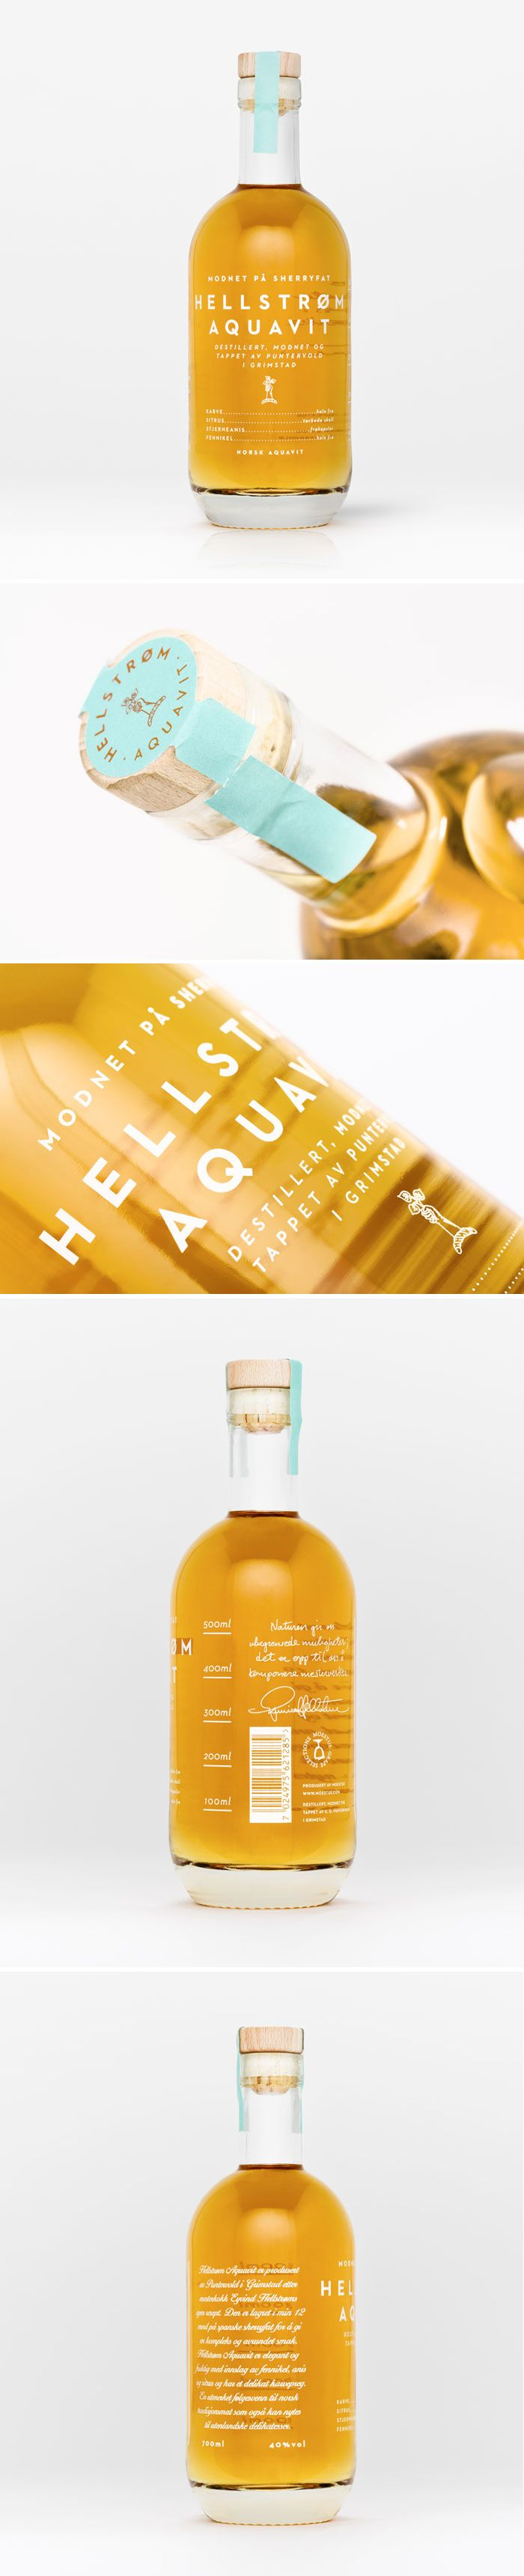 This is like a Wes Anderson movie in a bottle. #packaging spirit mxm